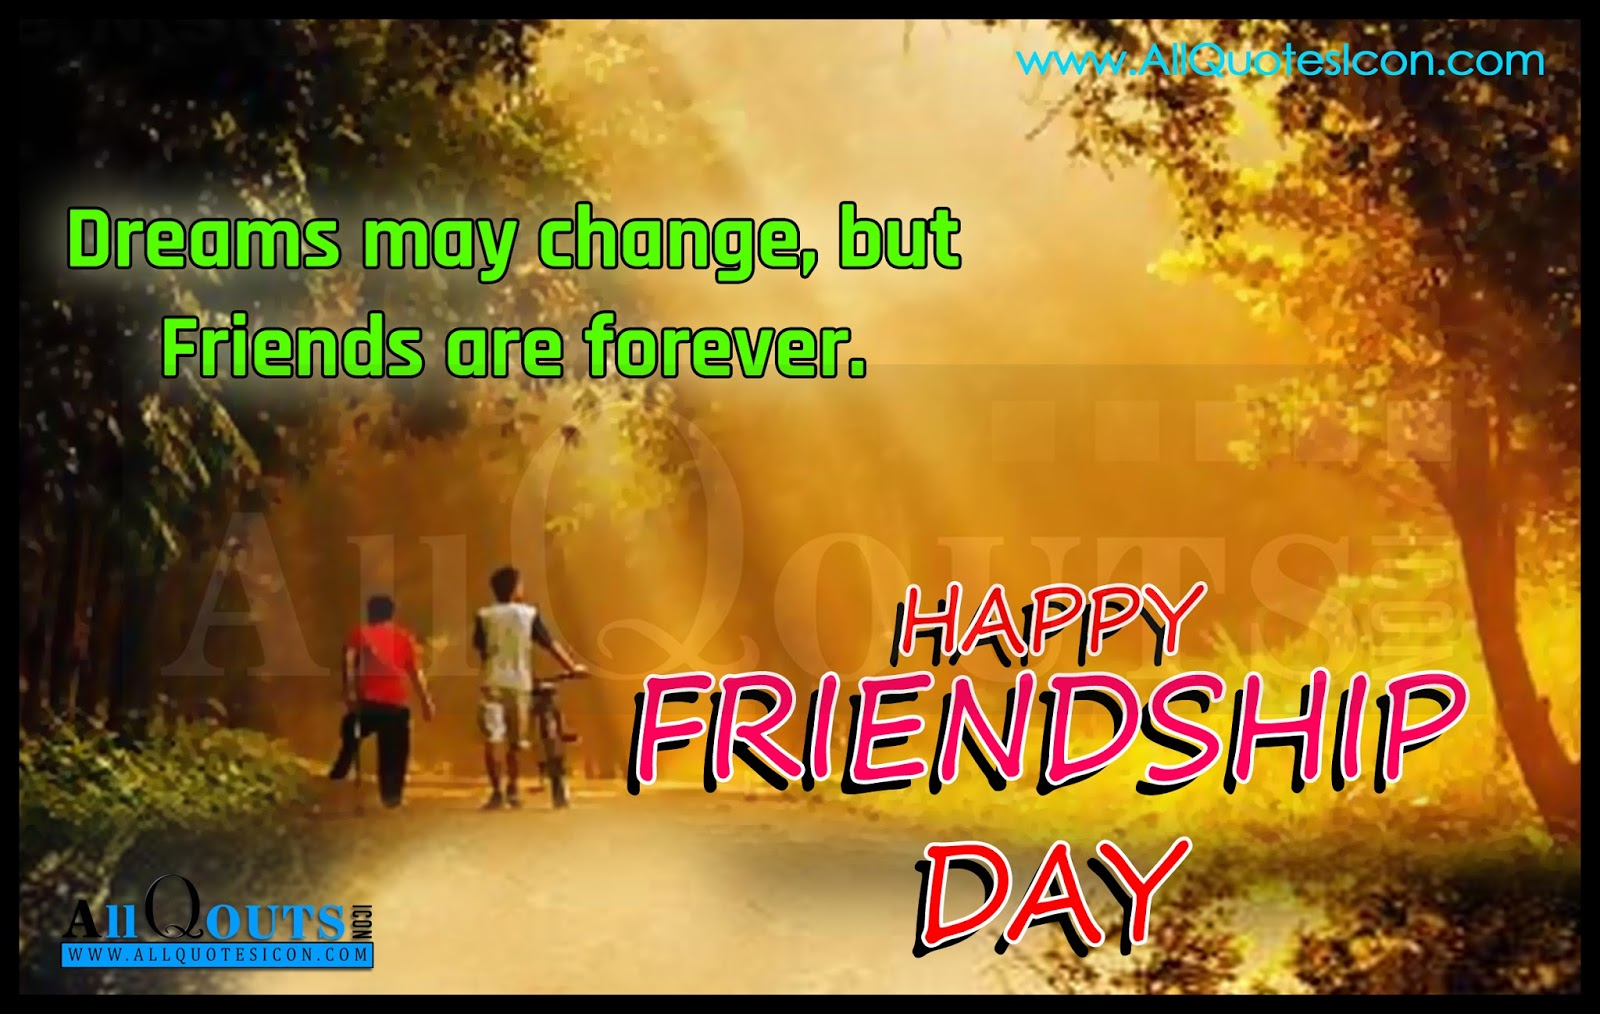 English Quotes About Friendship Quotes On Friendship Day In English Friends Forever Quotes For